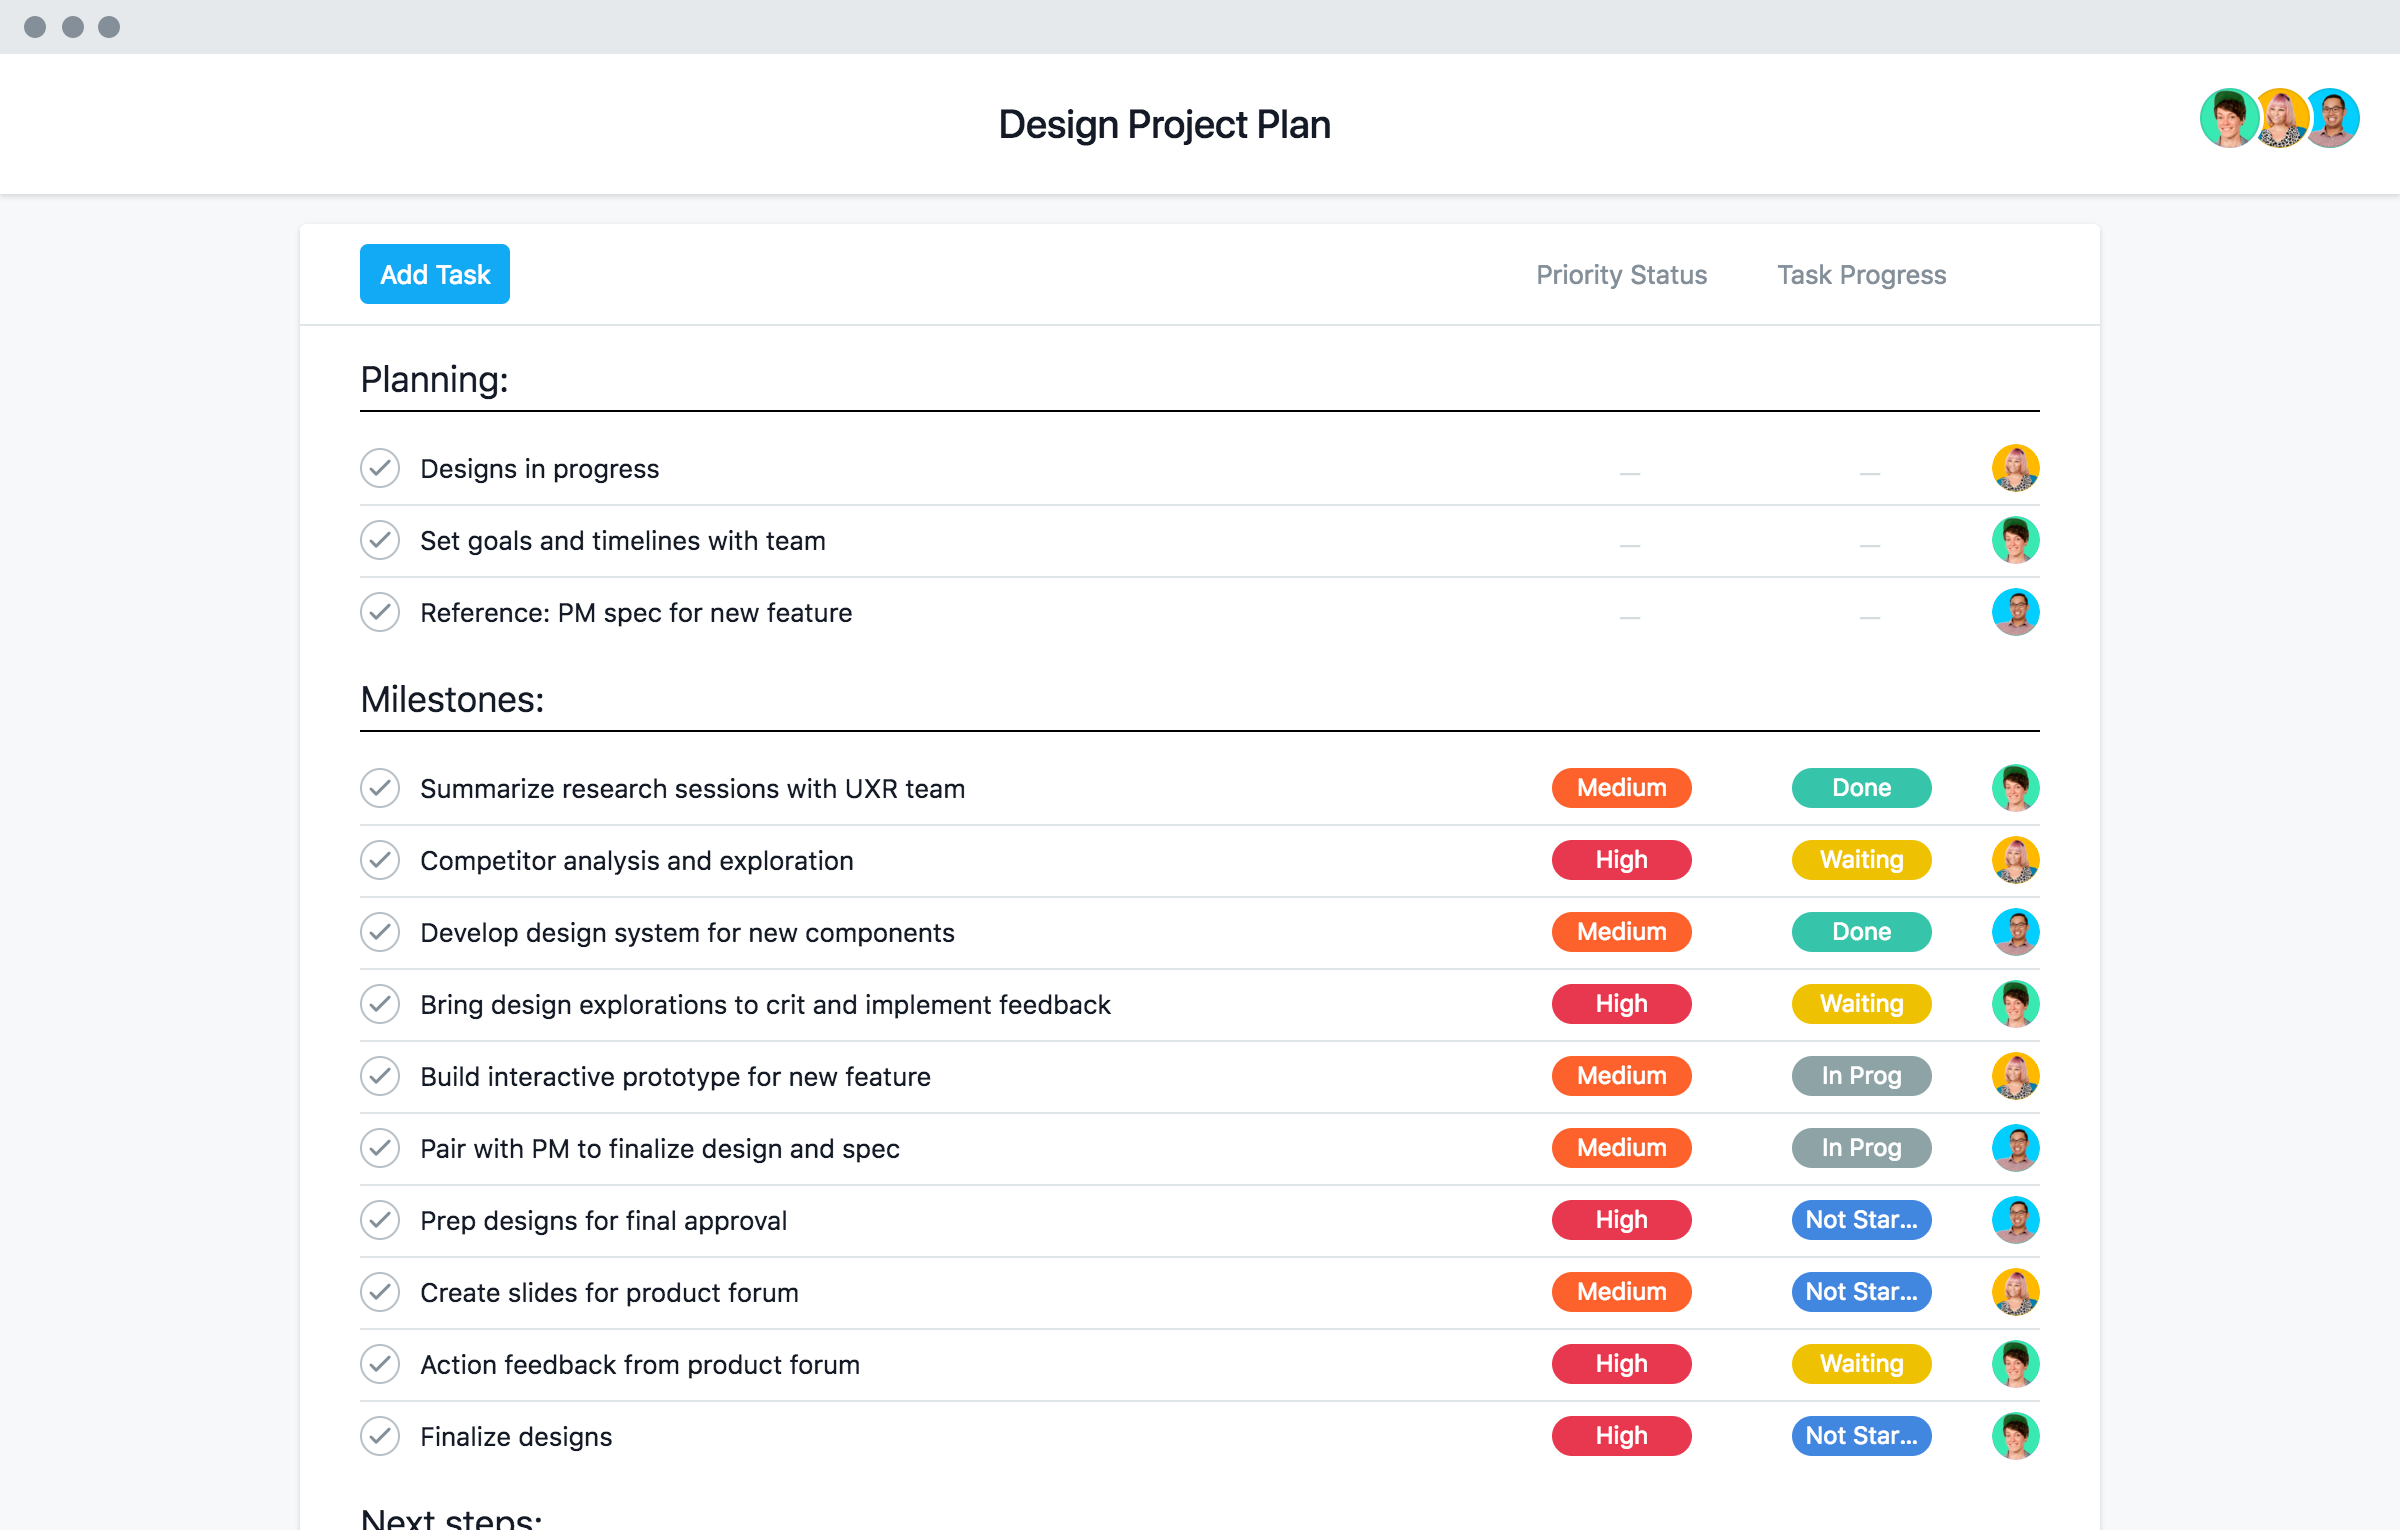 Design Project Management Template Asana